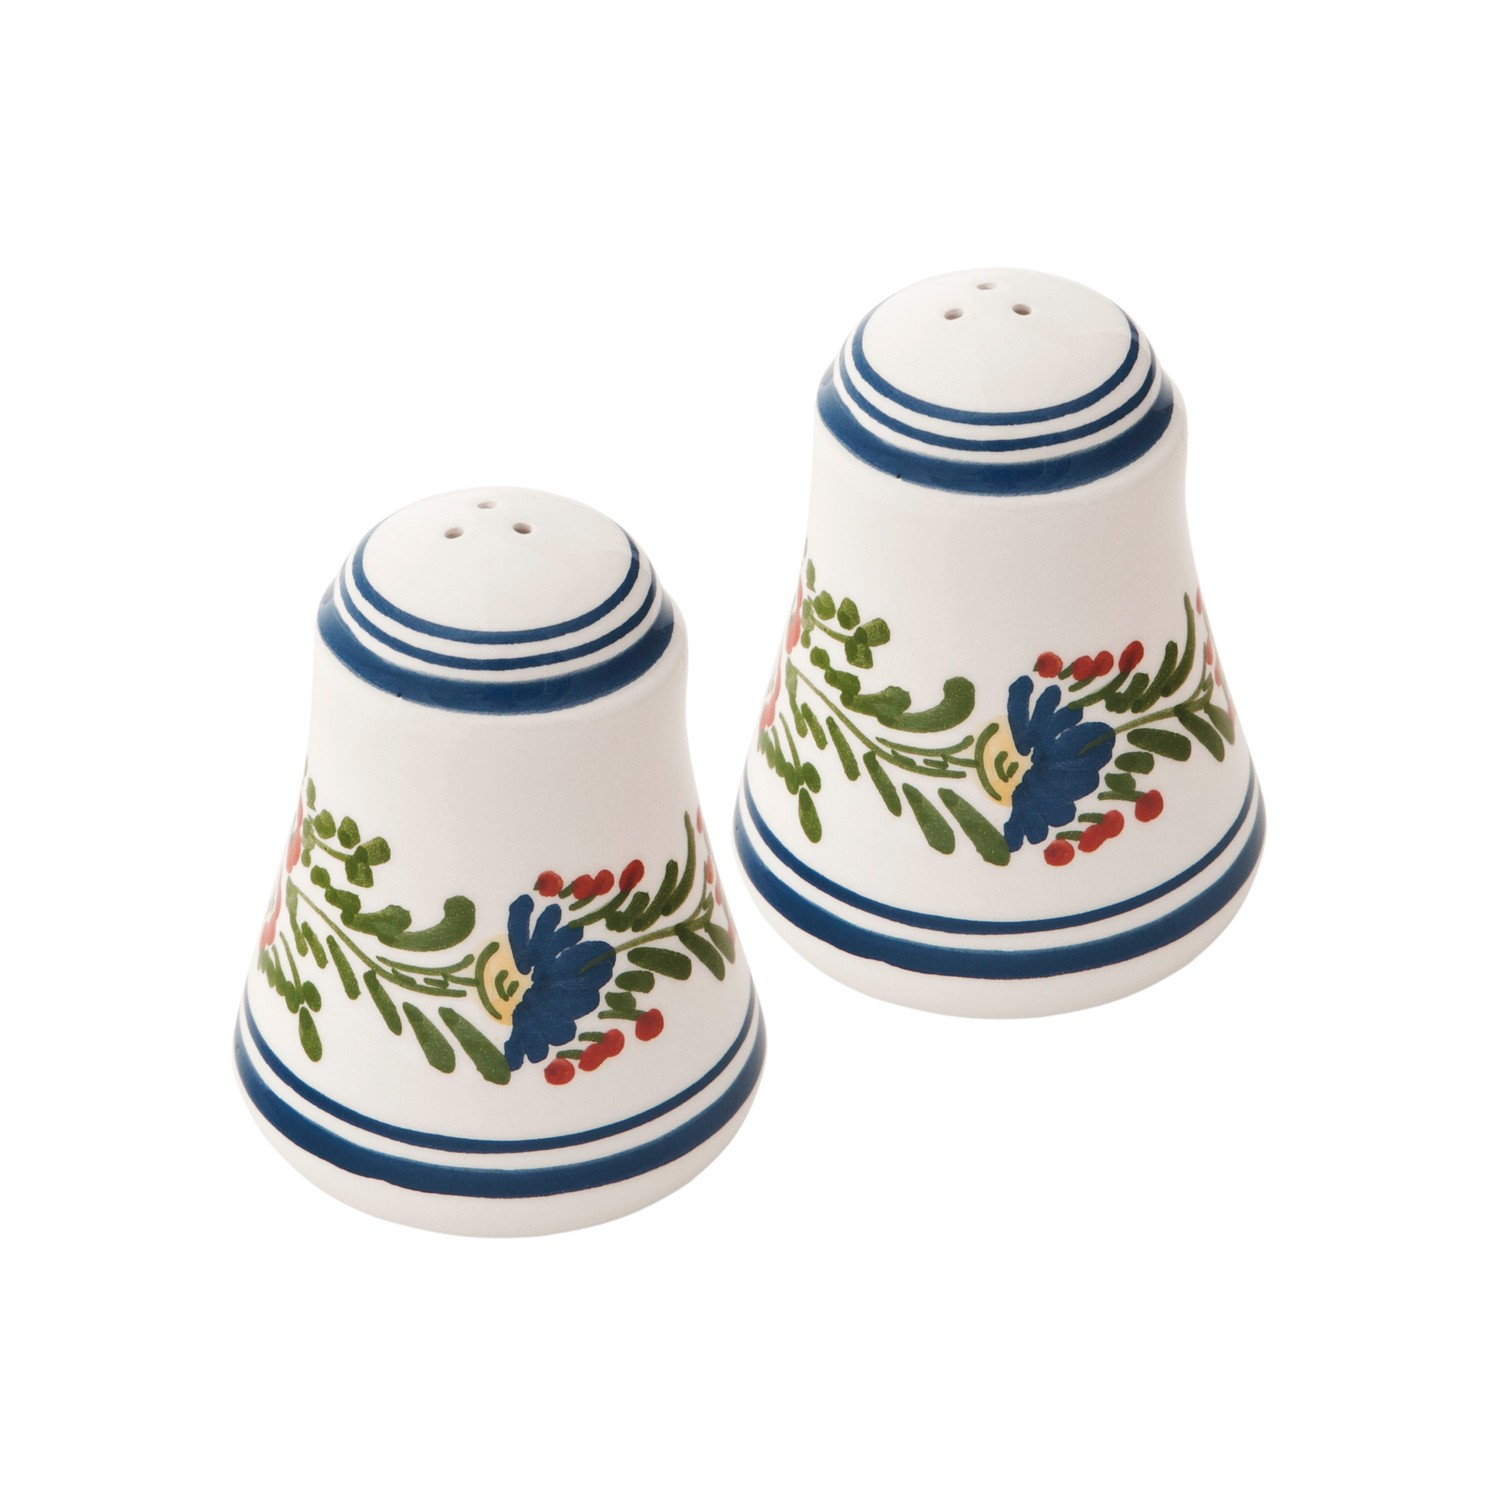 Skyriana-Ceramic_Salt_and_Pepper_Shakers-Hand_painted_Flowers-1